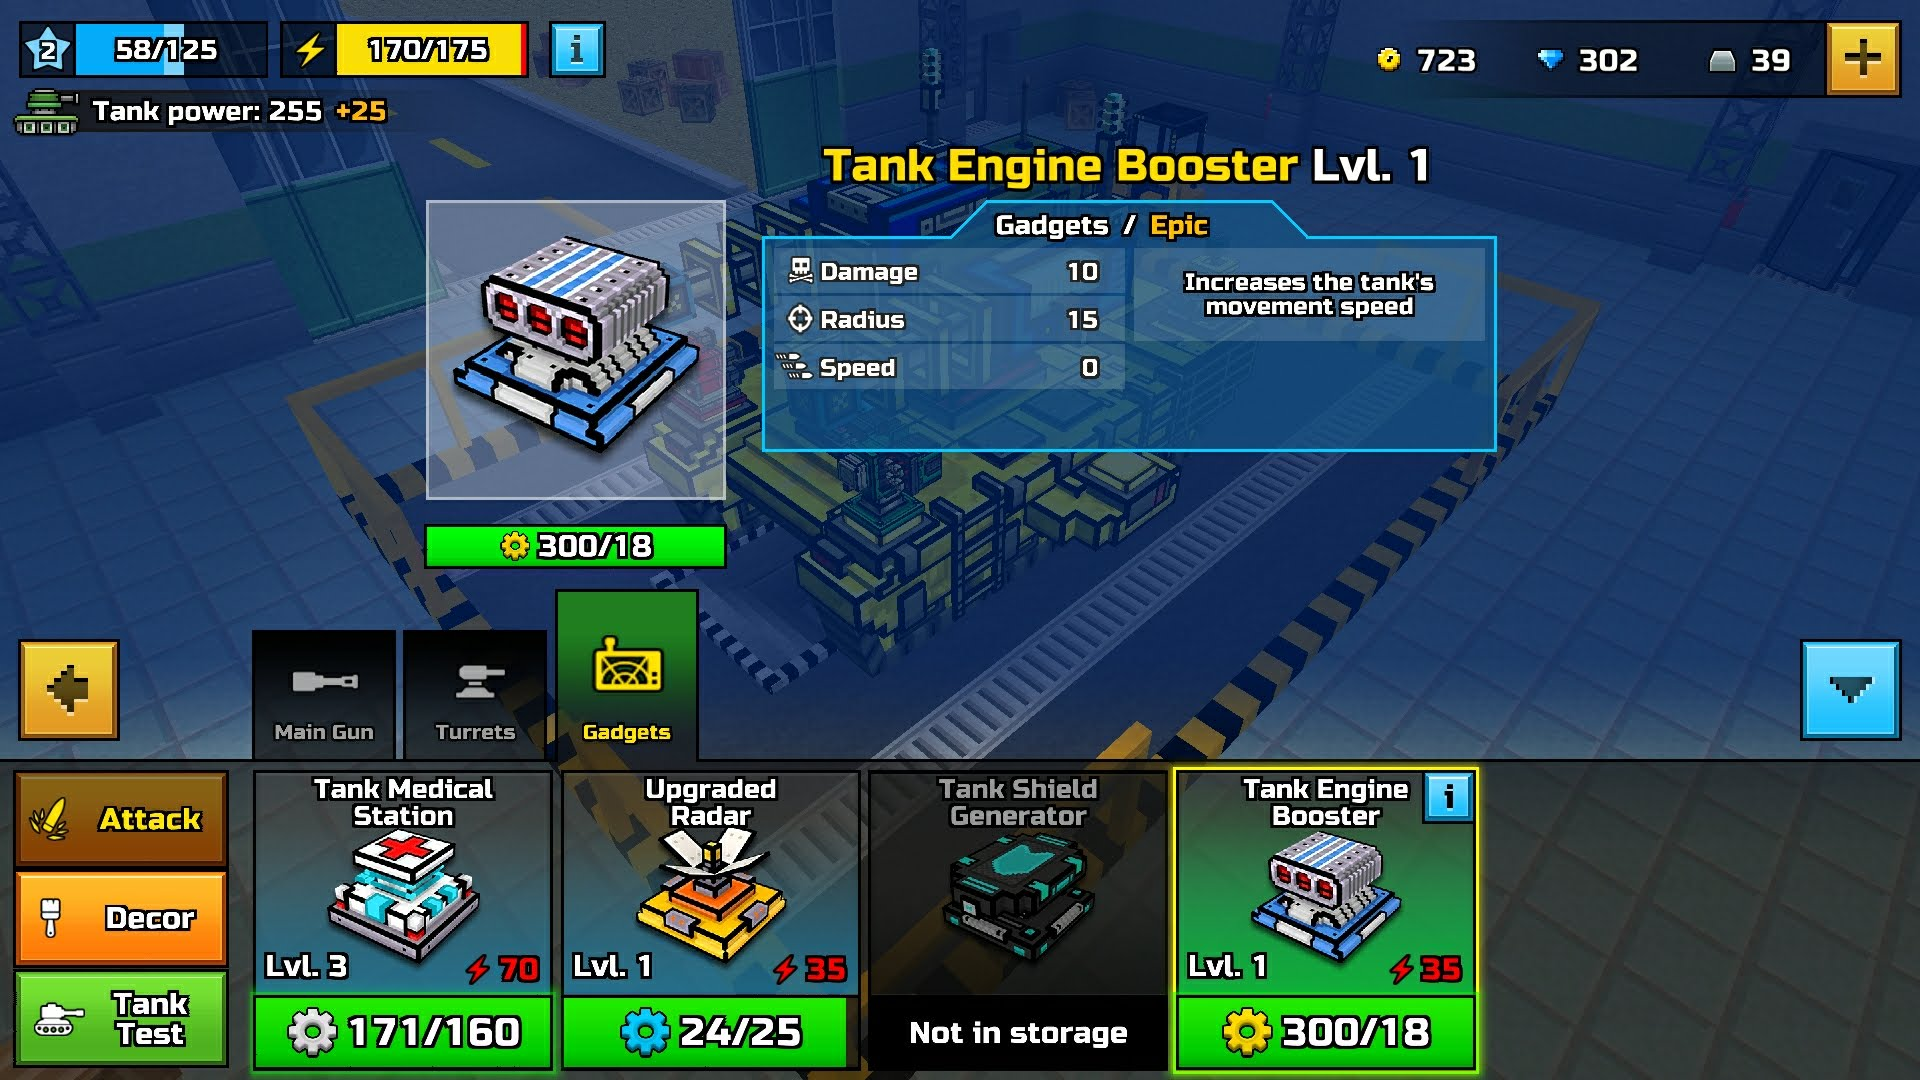 Tank Engine Booster